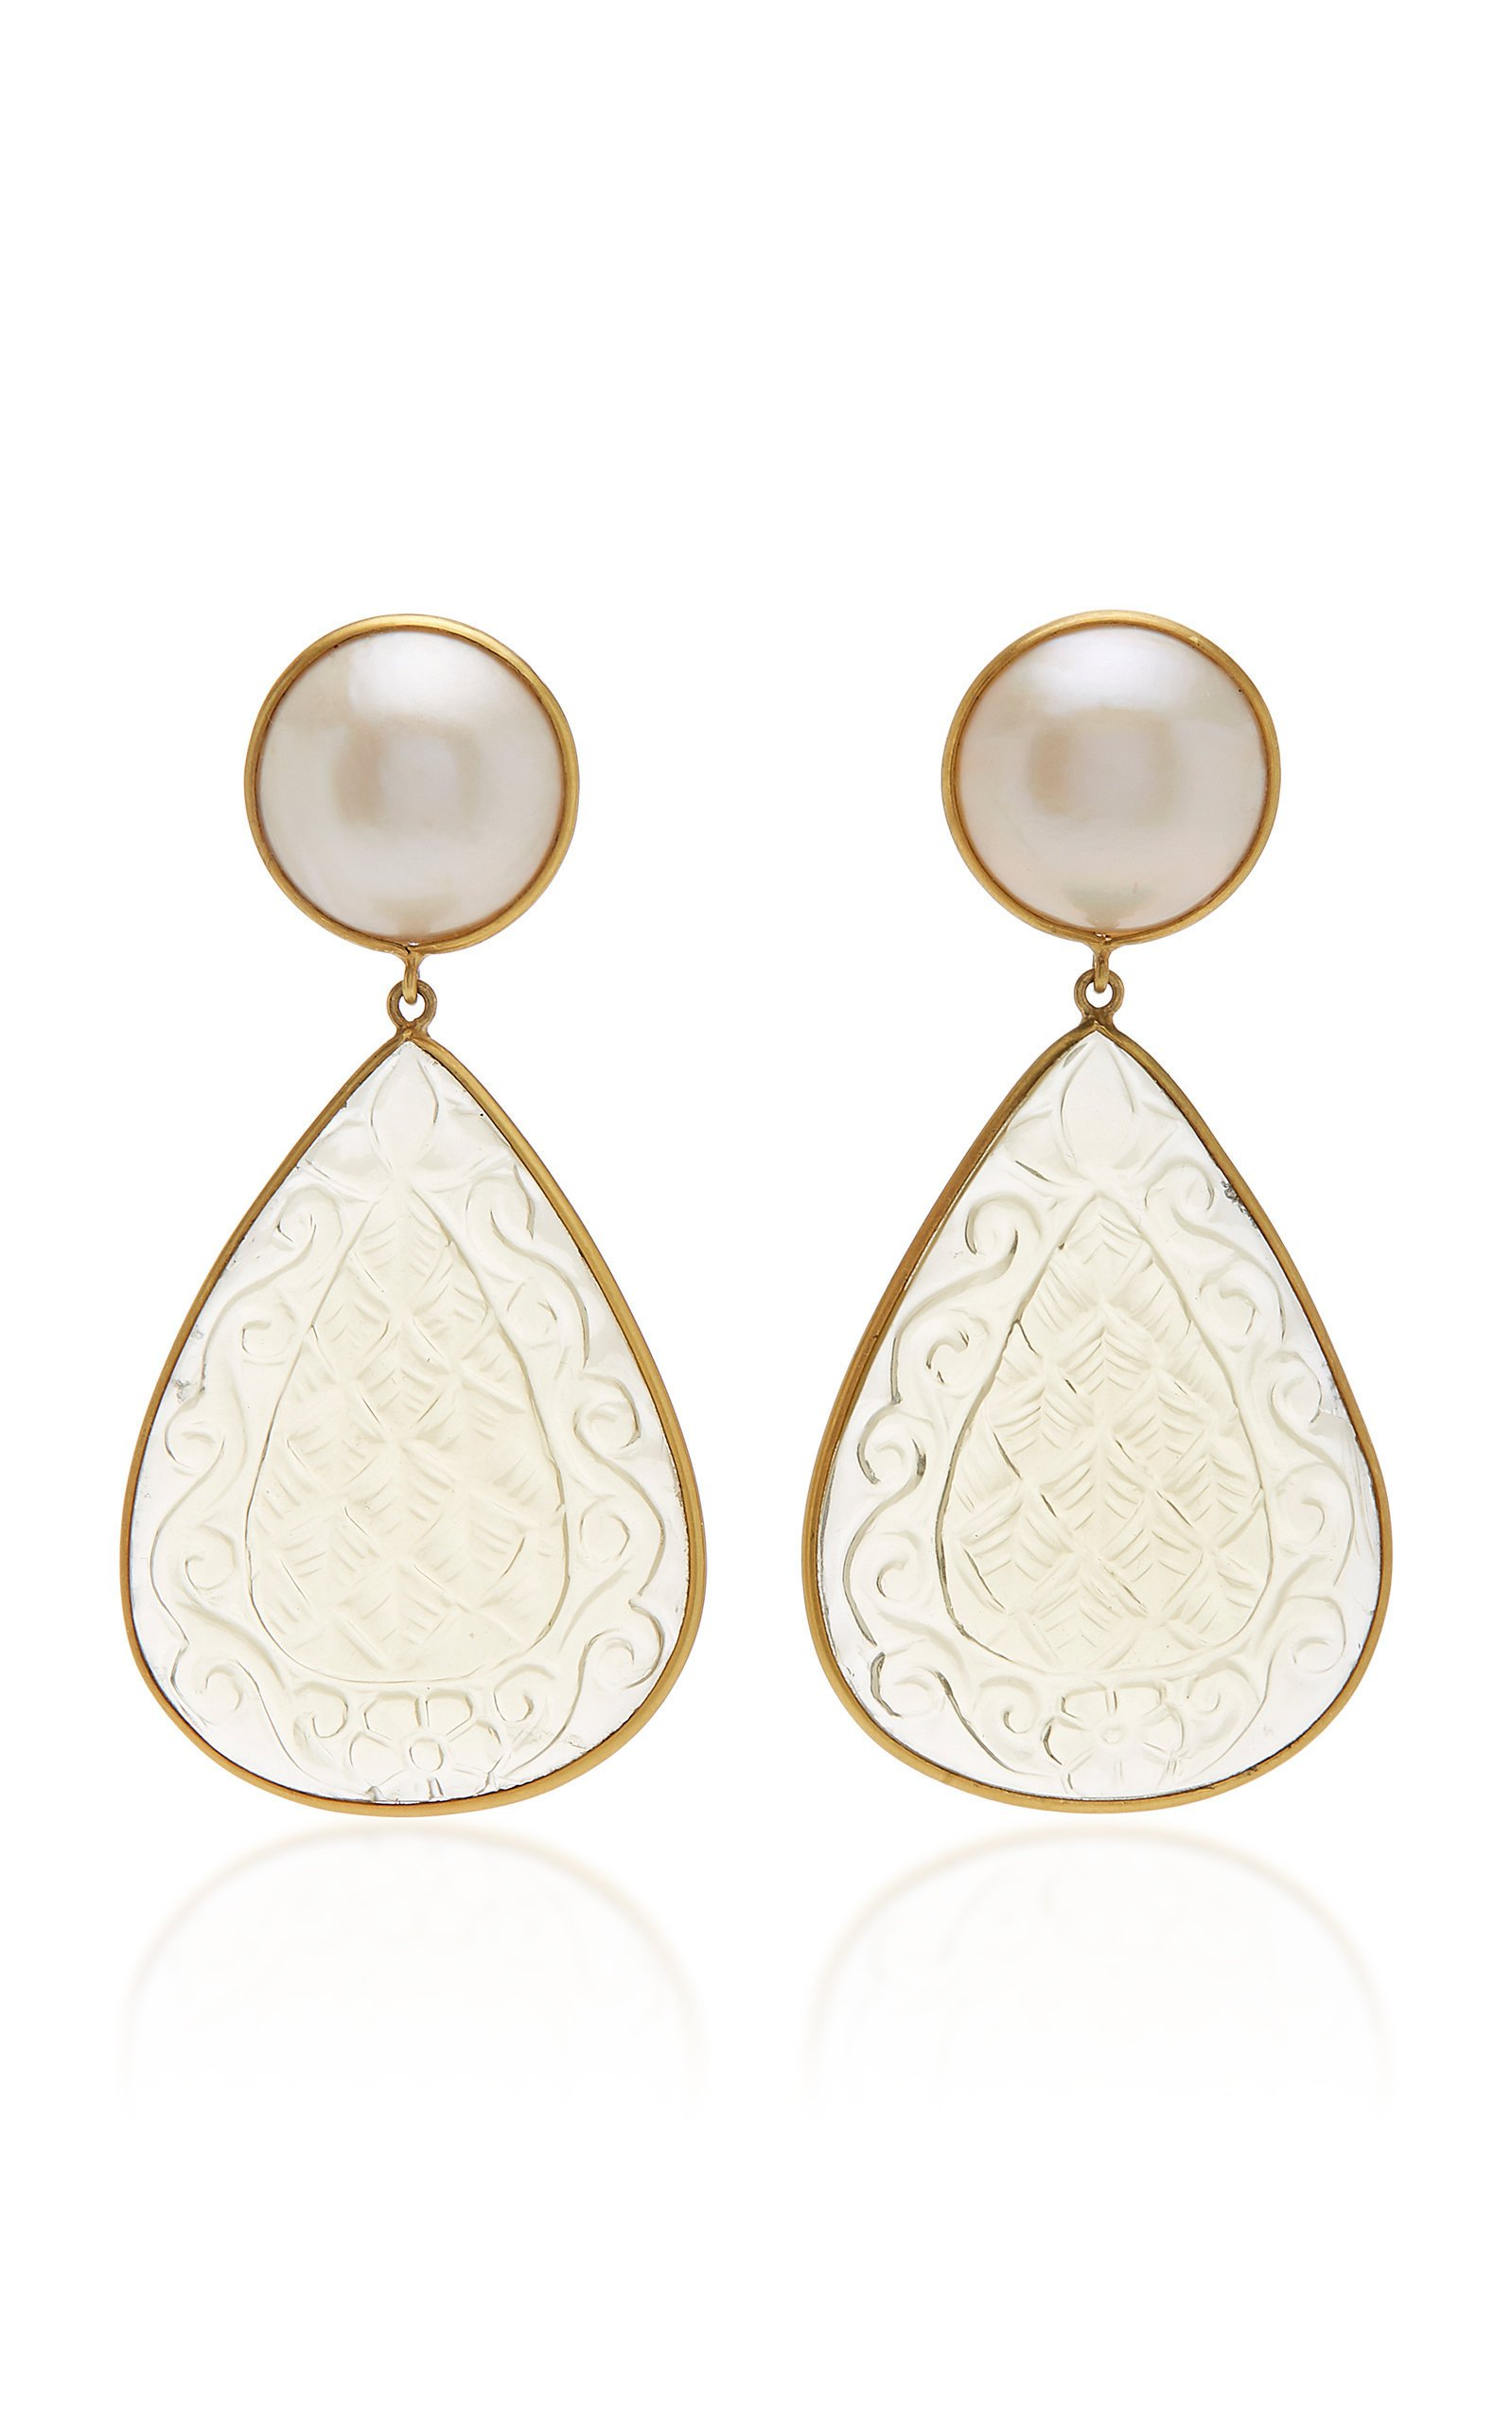 Bahina One of a Kind Mabe Pearl and Quartz Earrings